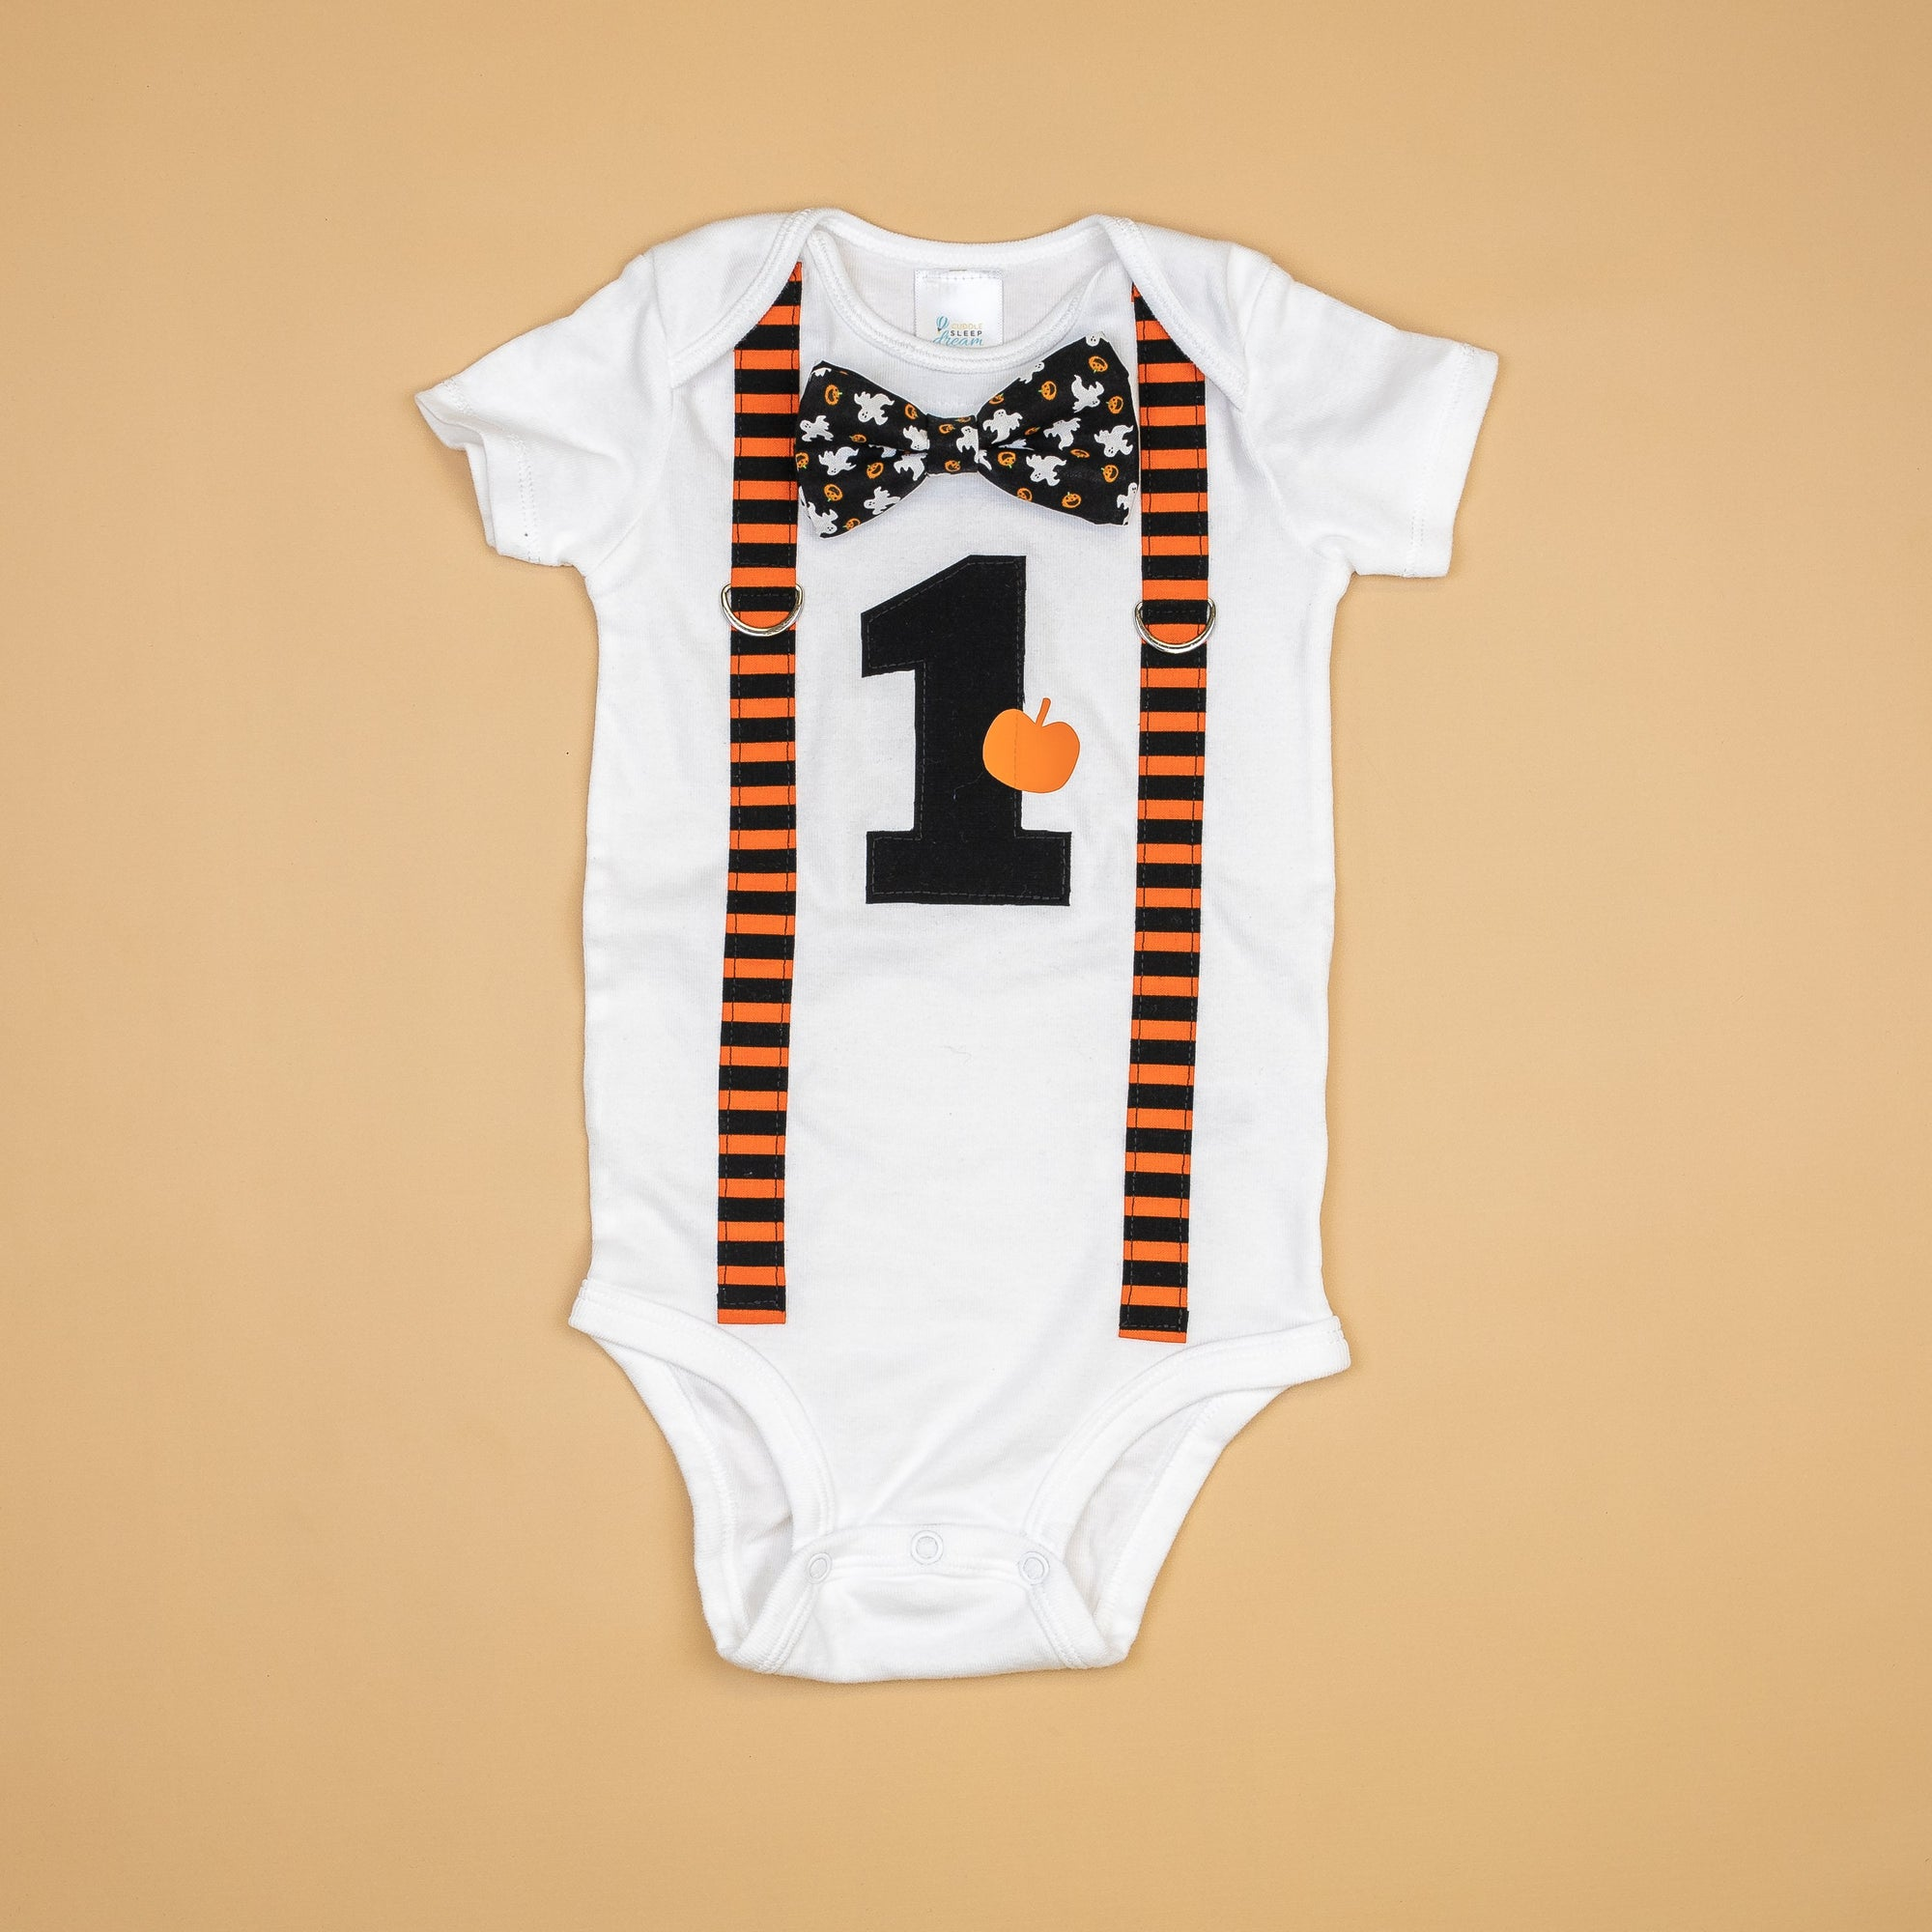 Cuddle Sleep Dream Halloween 1st Birthday Onesie